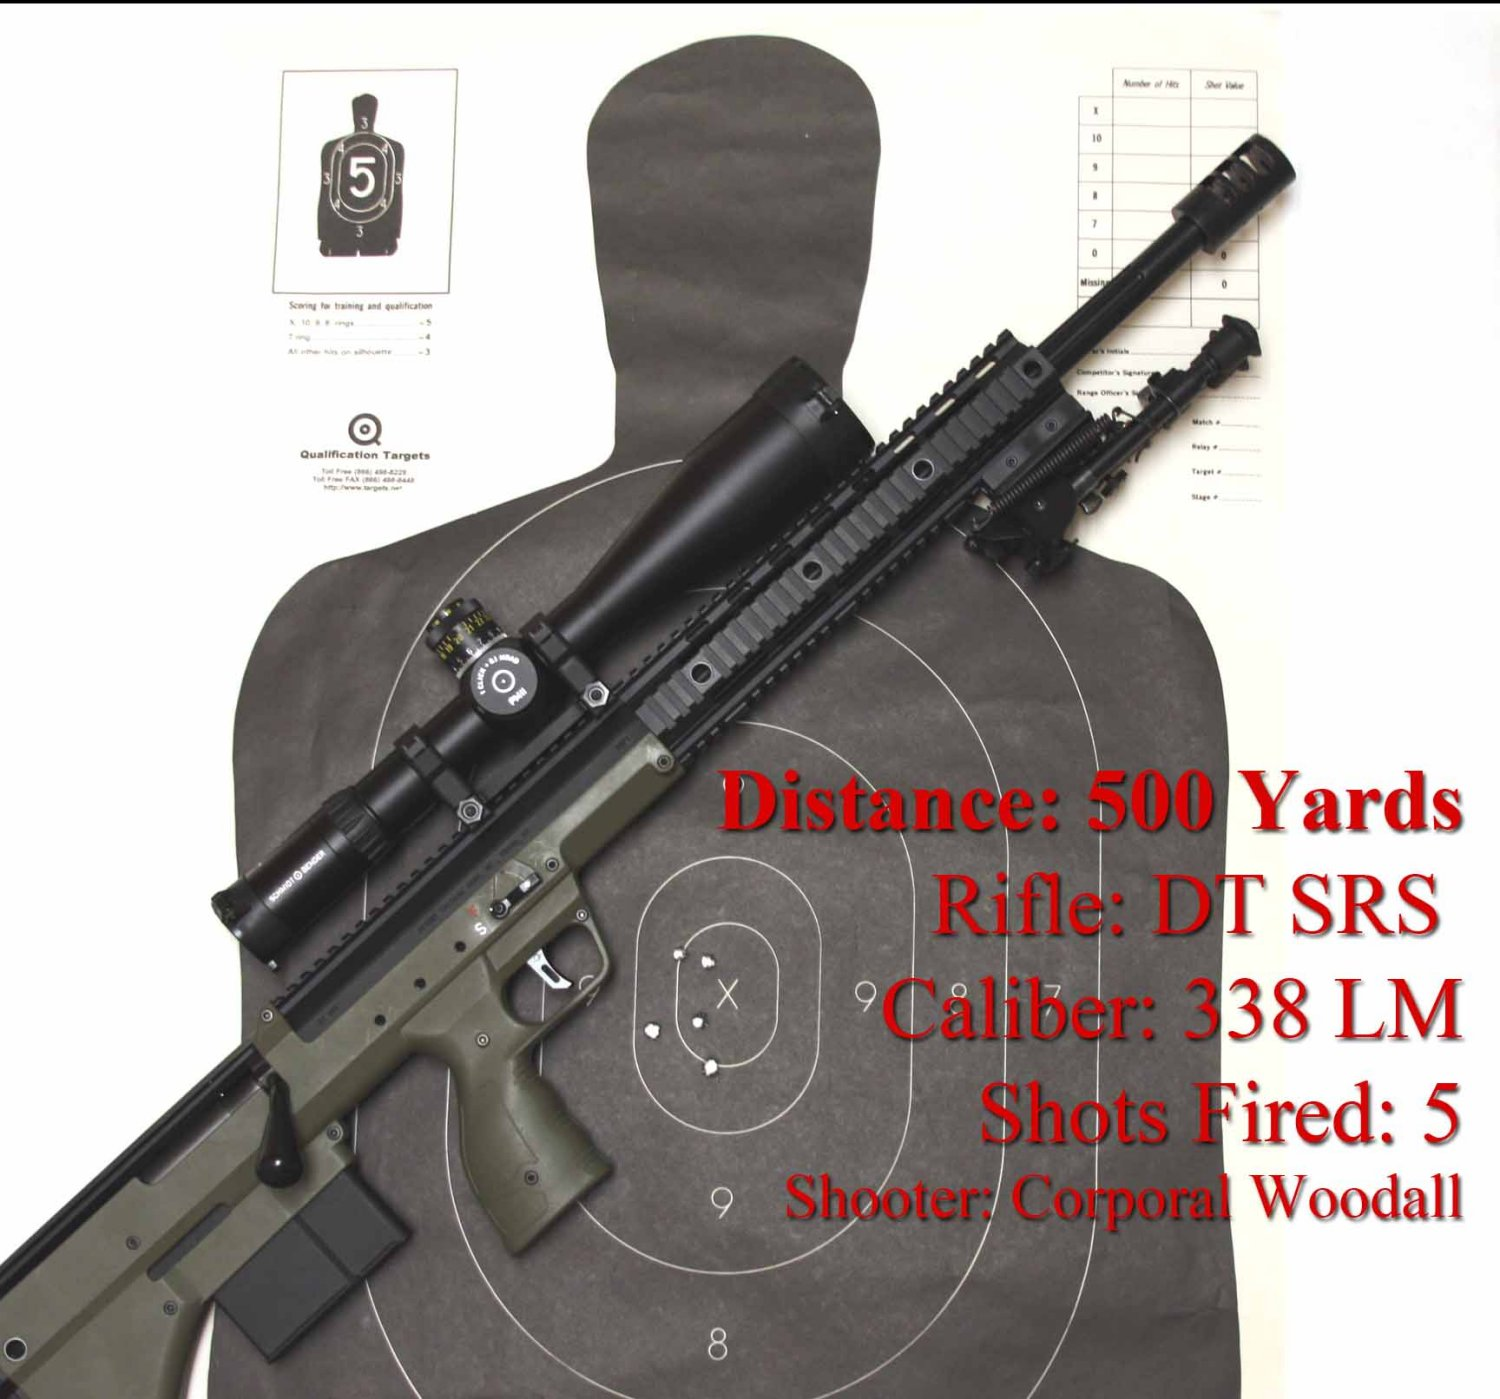 DesertTacicalArms SRS338LM 500YardTarget Small <!  :en  >Desert Tactical Arms Stealth Recon Scout Modular/Multi Caliber Bullpup Anti Materiel/Sniper Rifle for Military Special Operations Forces (SOF) and Civilian Tactical Shooters<!  :  >